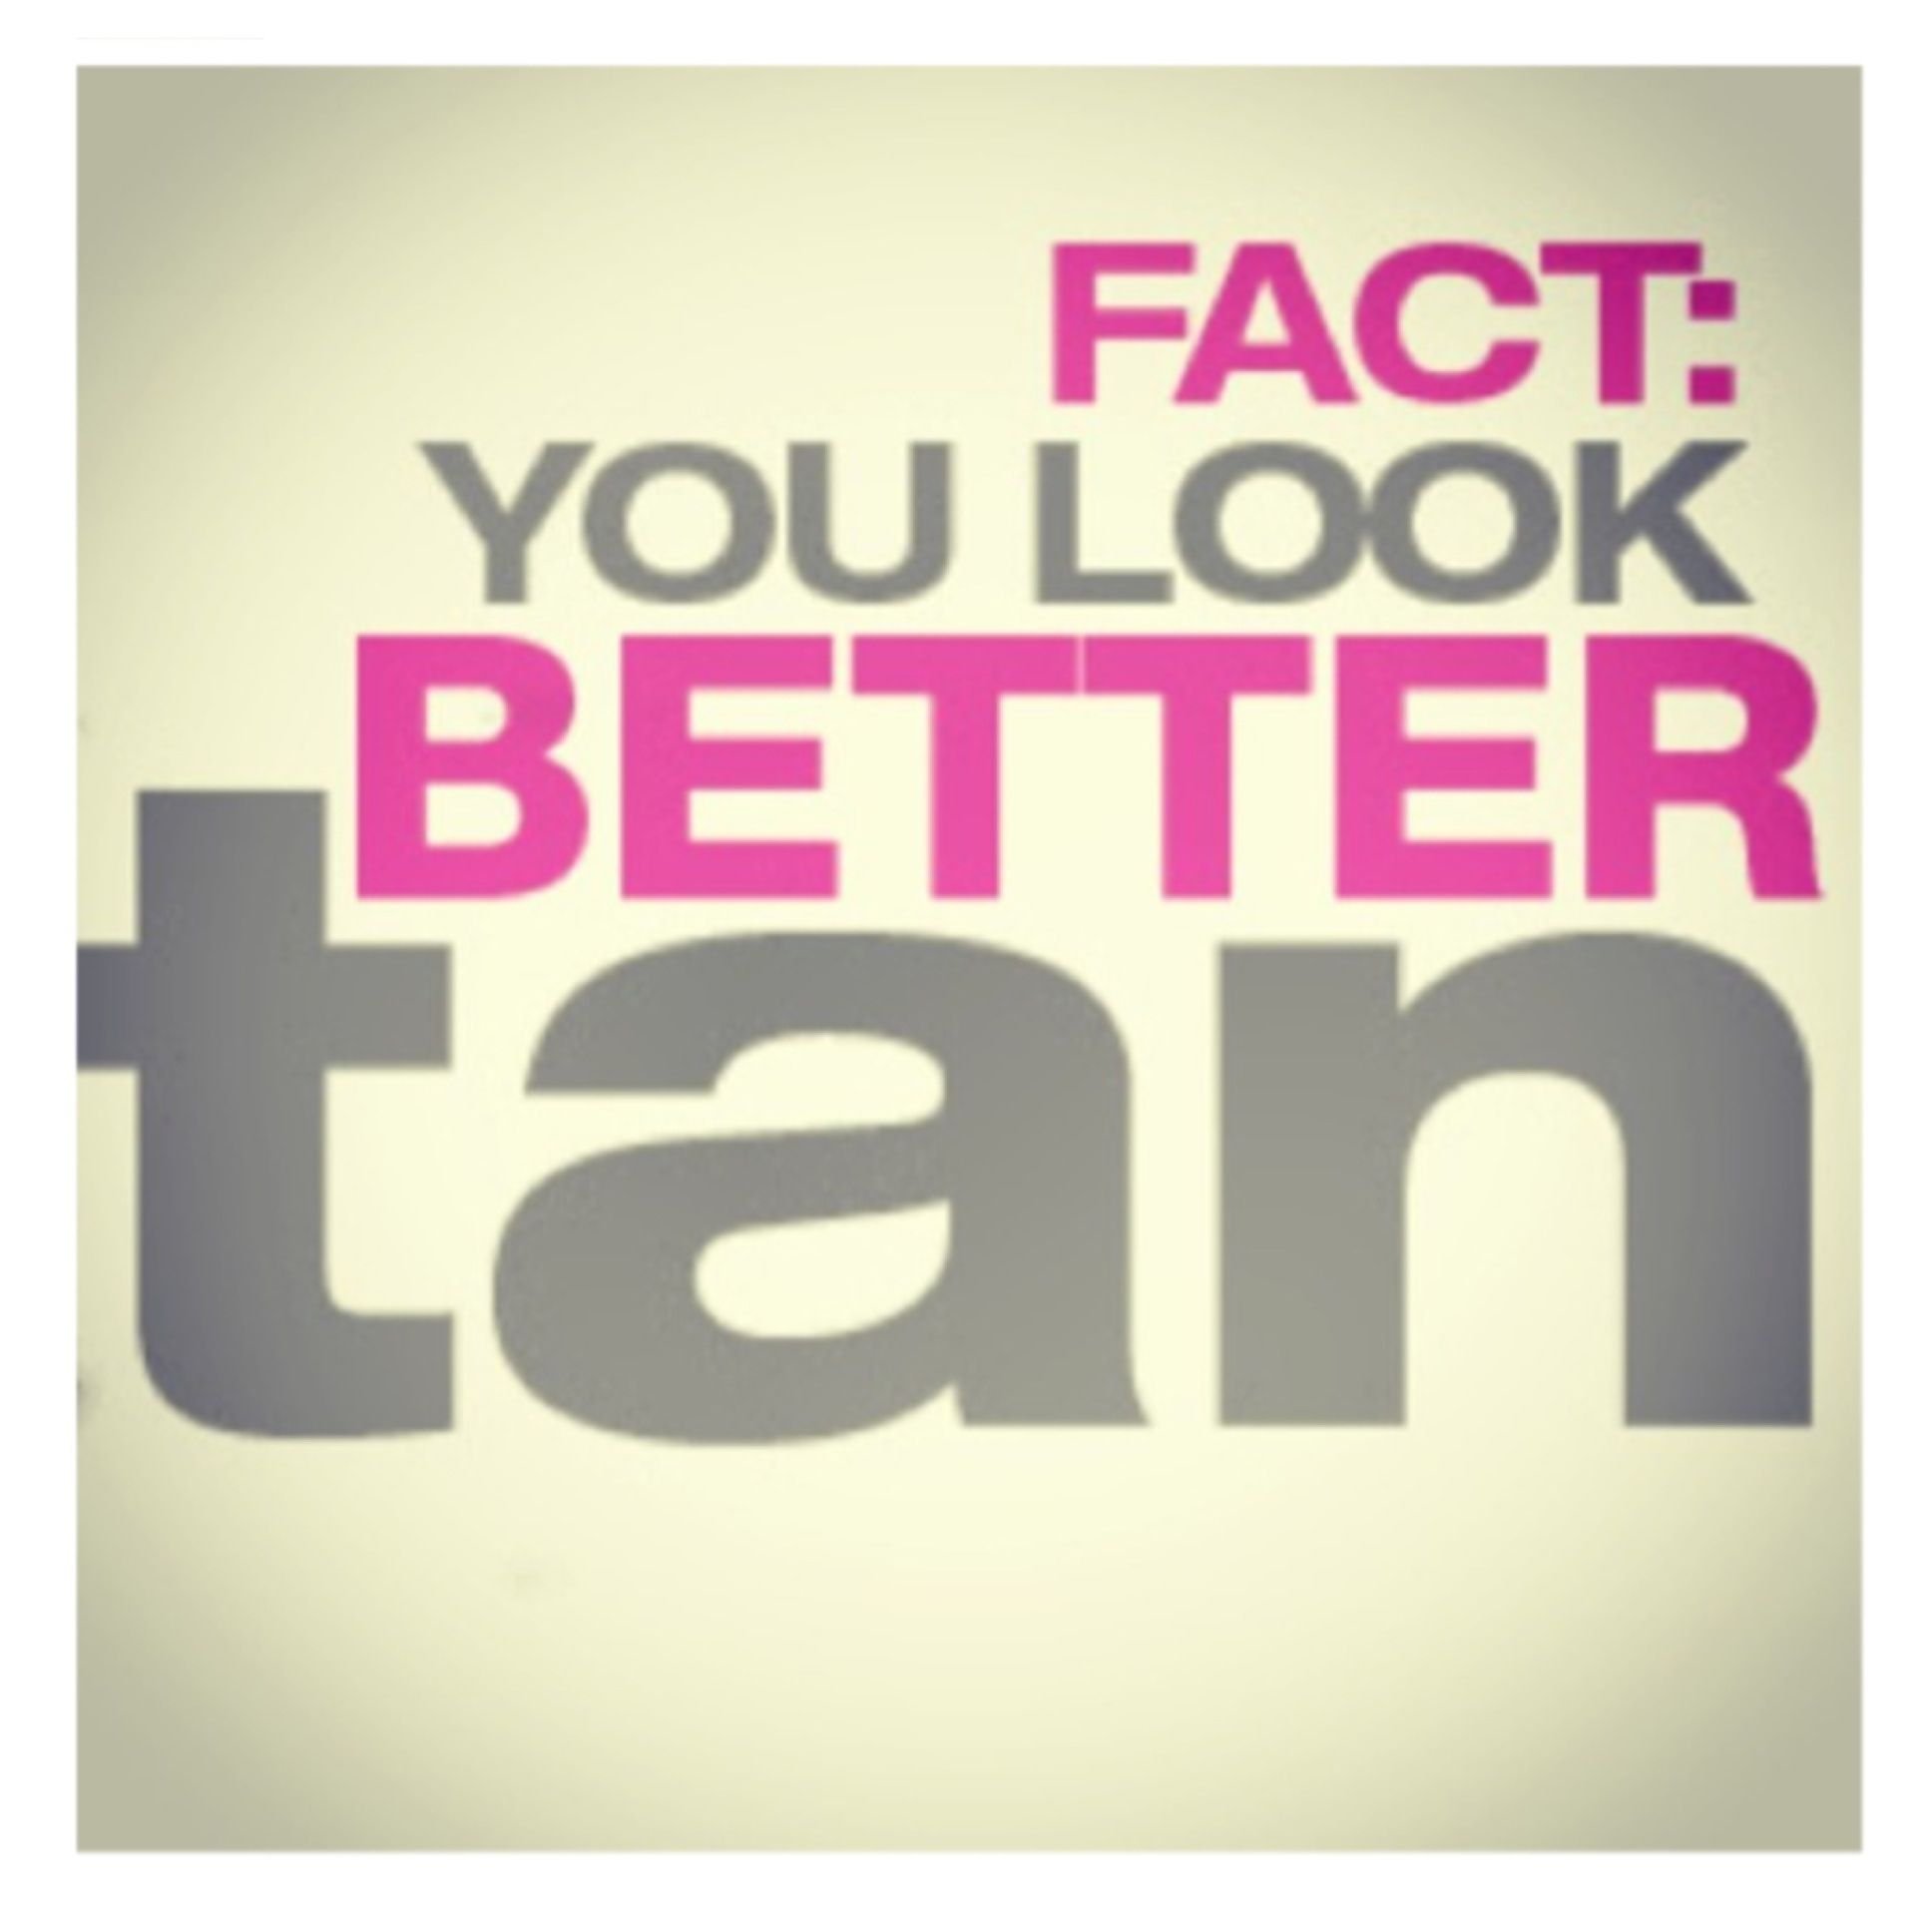 Airbrush Tanning With Norvell Junction Salon Spray Tanning Quotes Tanning Quotes Spray Tanning